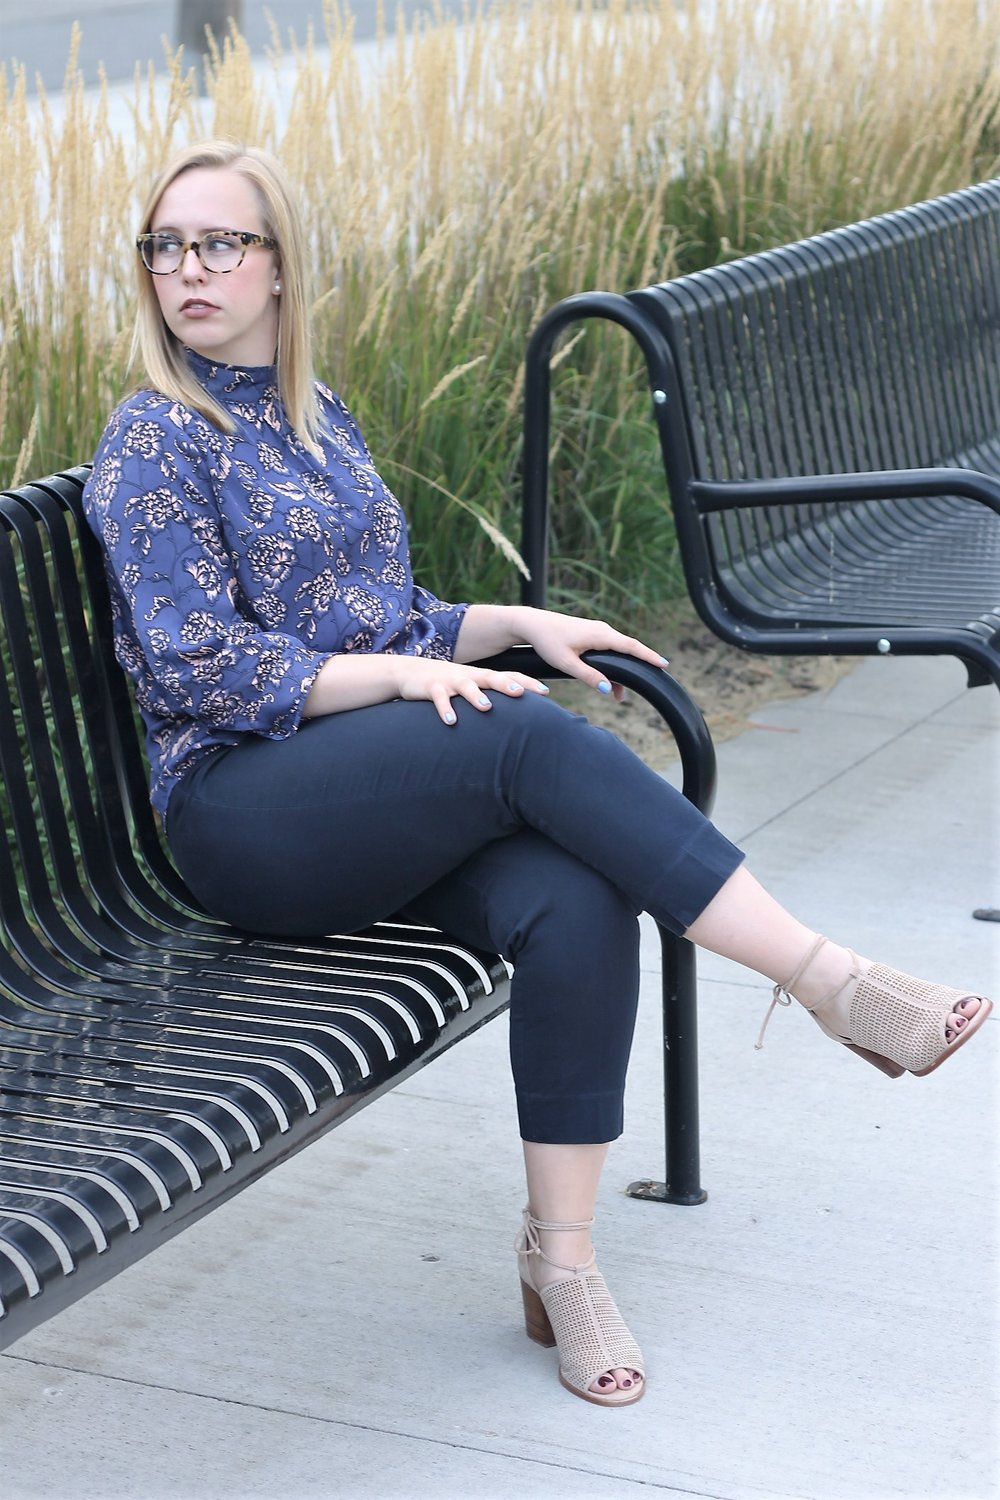 Modest Top in a Bright Print Makes a Big Impact | Work & What She Wore